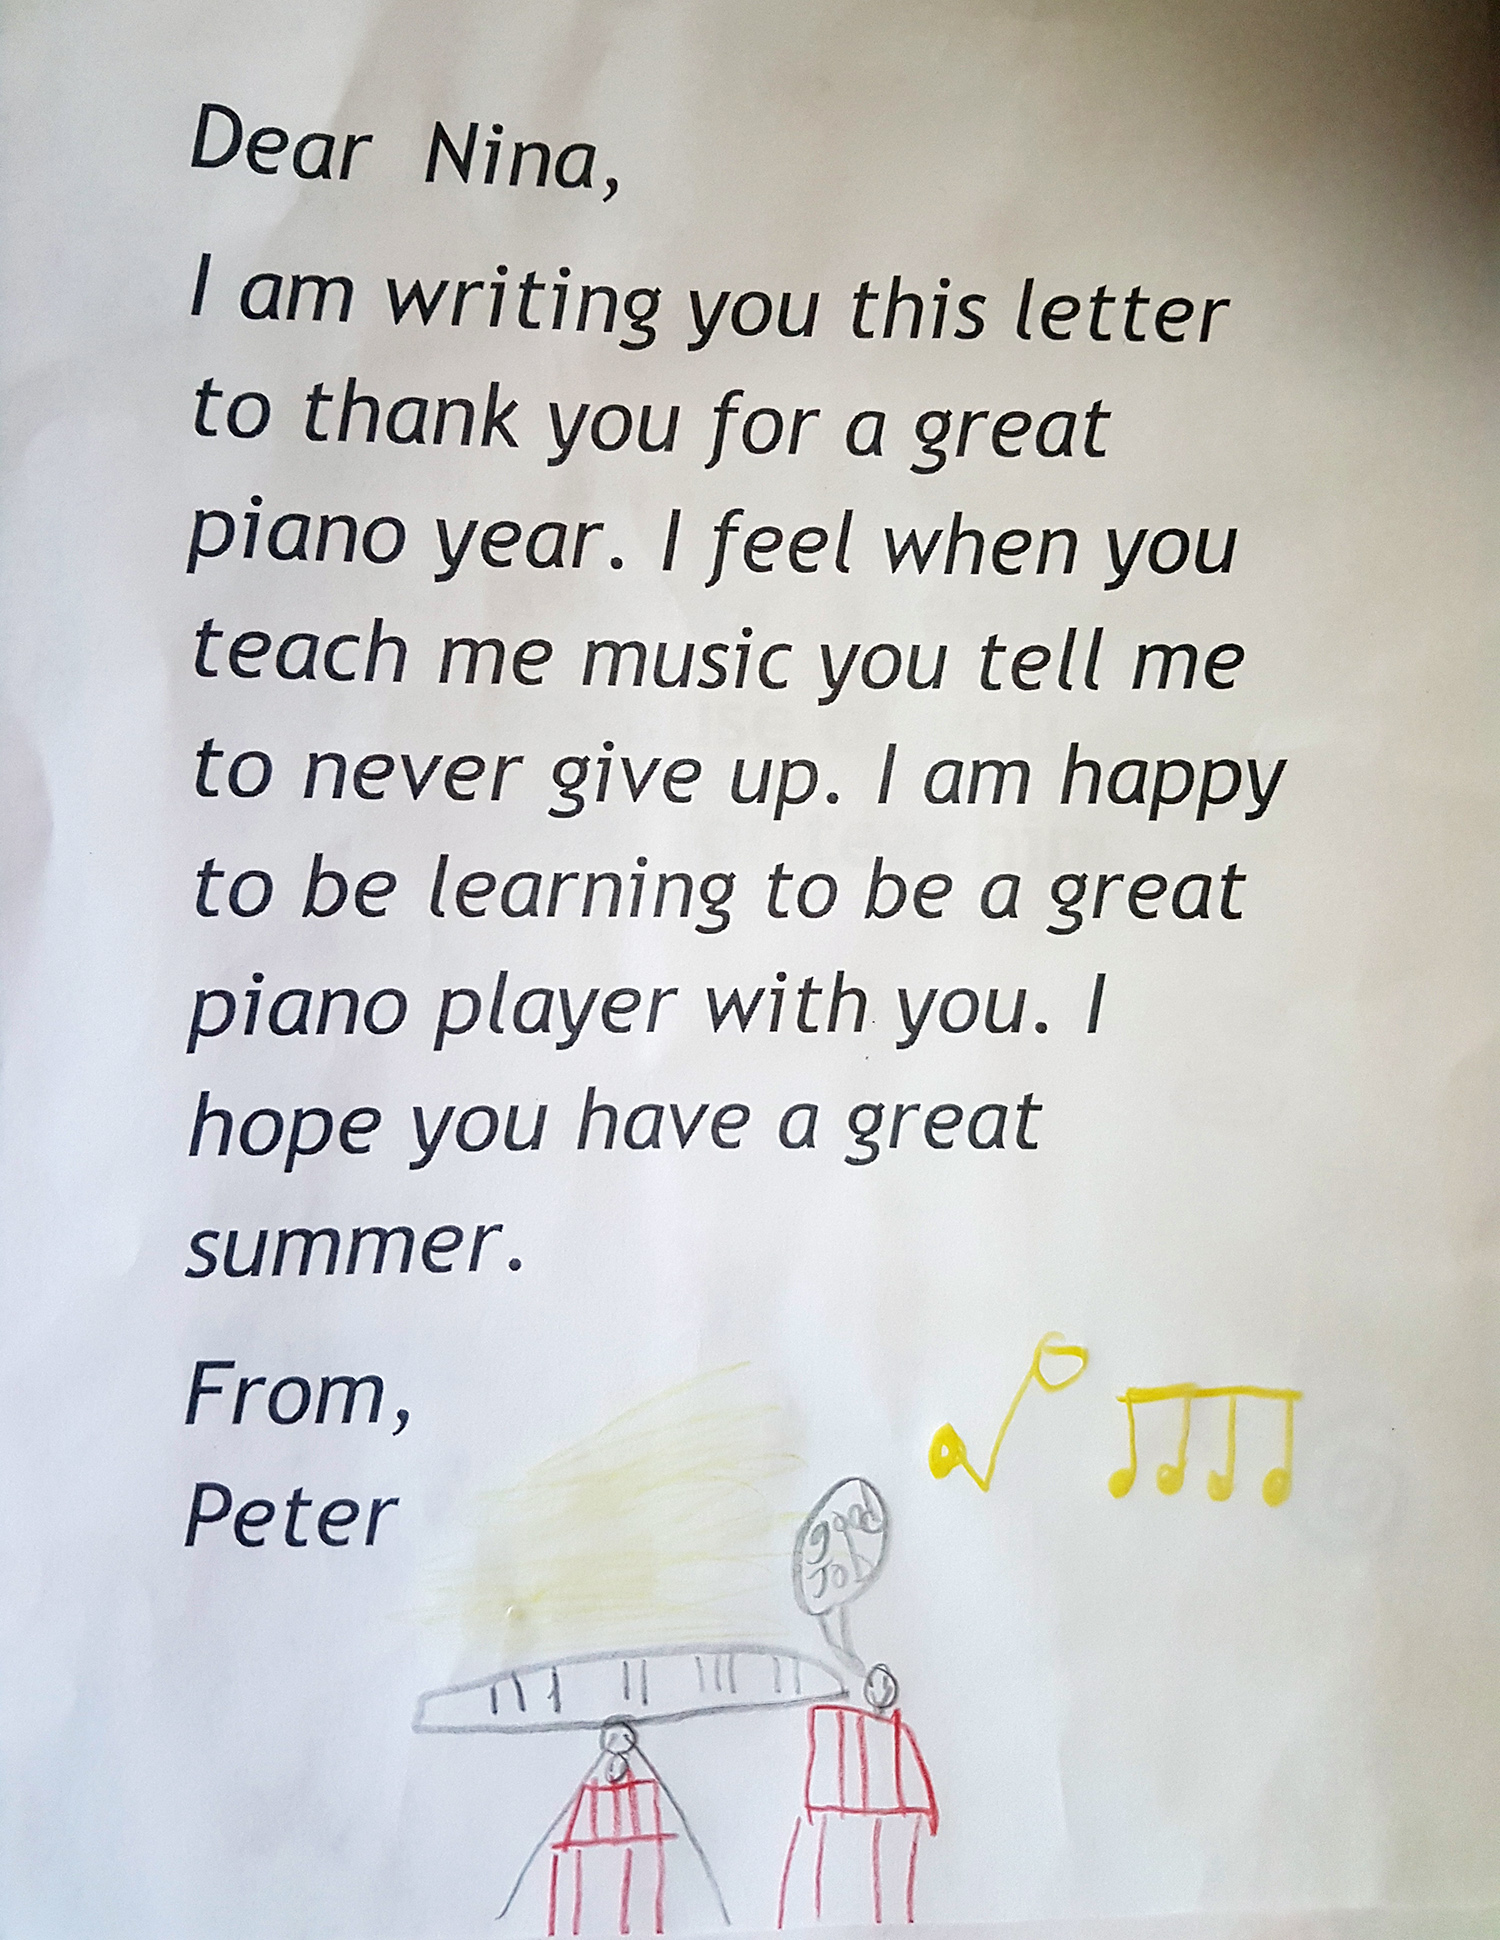 Neighbour Note Piano Student Peter Wrote This Really Nice Letter Thanking  His Piano Teacher Nina For Her Encouragement And Guidance With His Piano  Lessons.